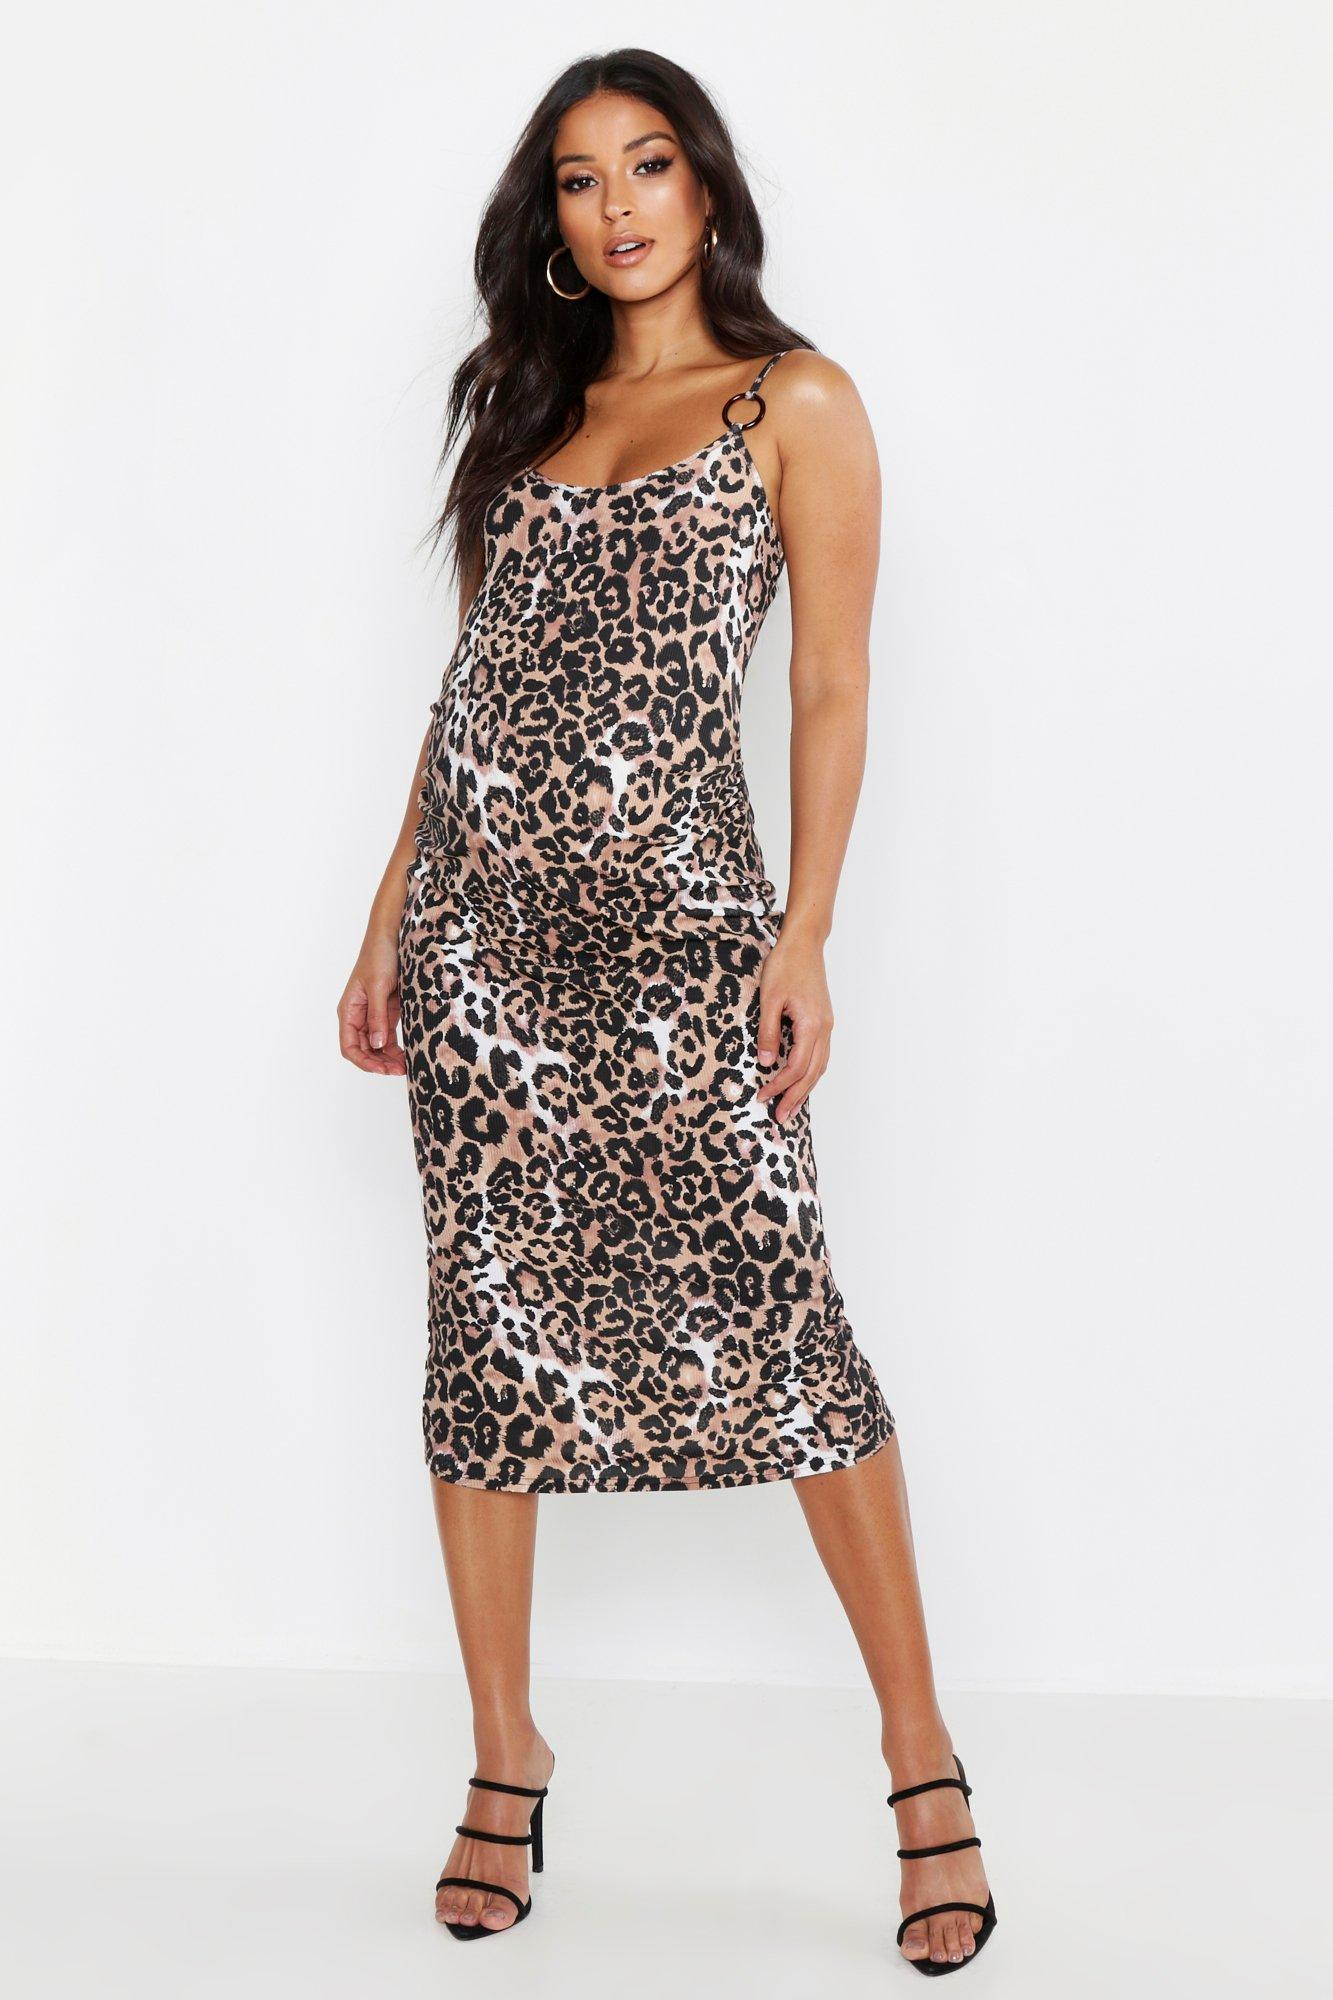 8296317a1b8d5 Vintage Style Maternity Clothes Maternity Leopard Rib Ring Detail Bodycon  Dress $32.00 AT vintagedancer.com